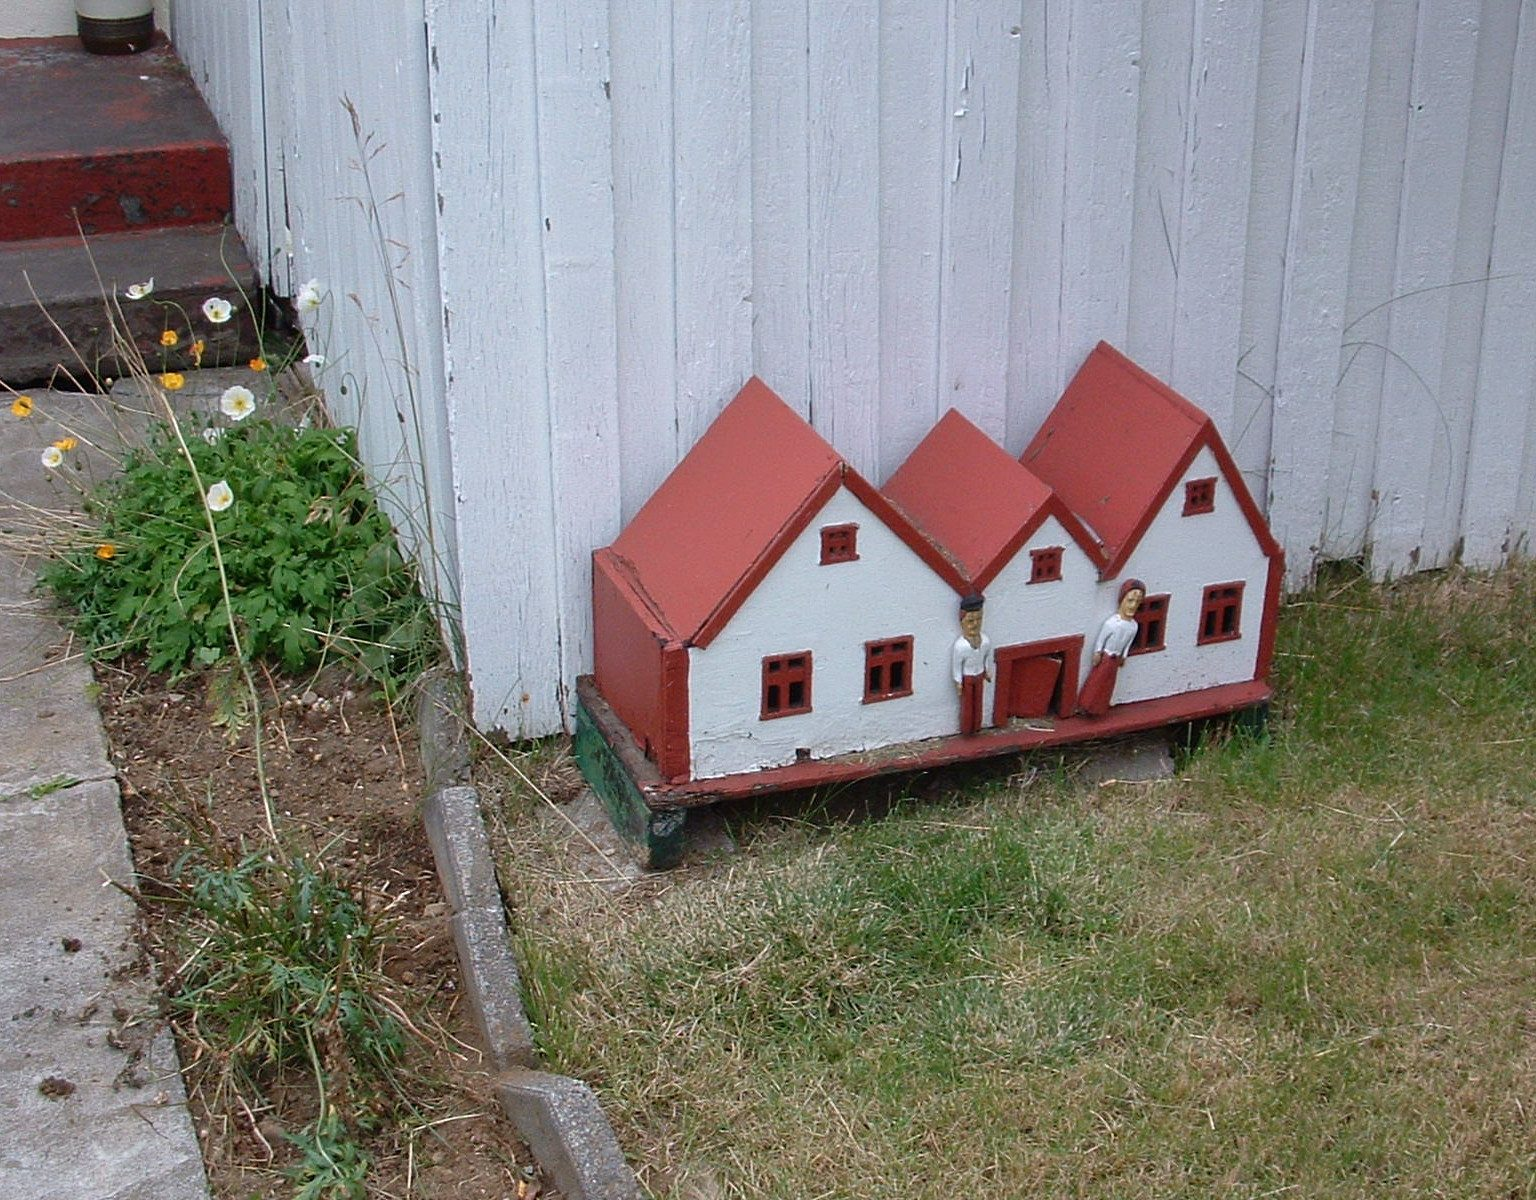 A picture of a model house. Not connected to elves in any way.